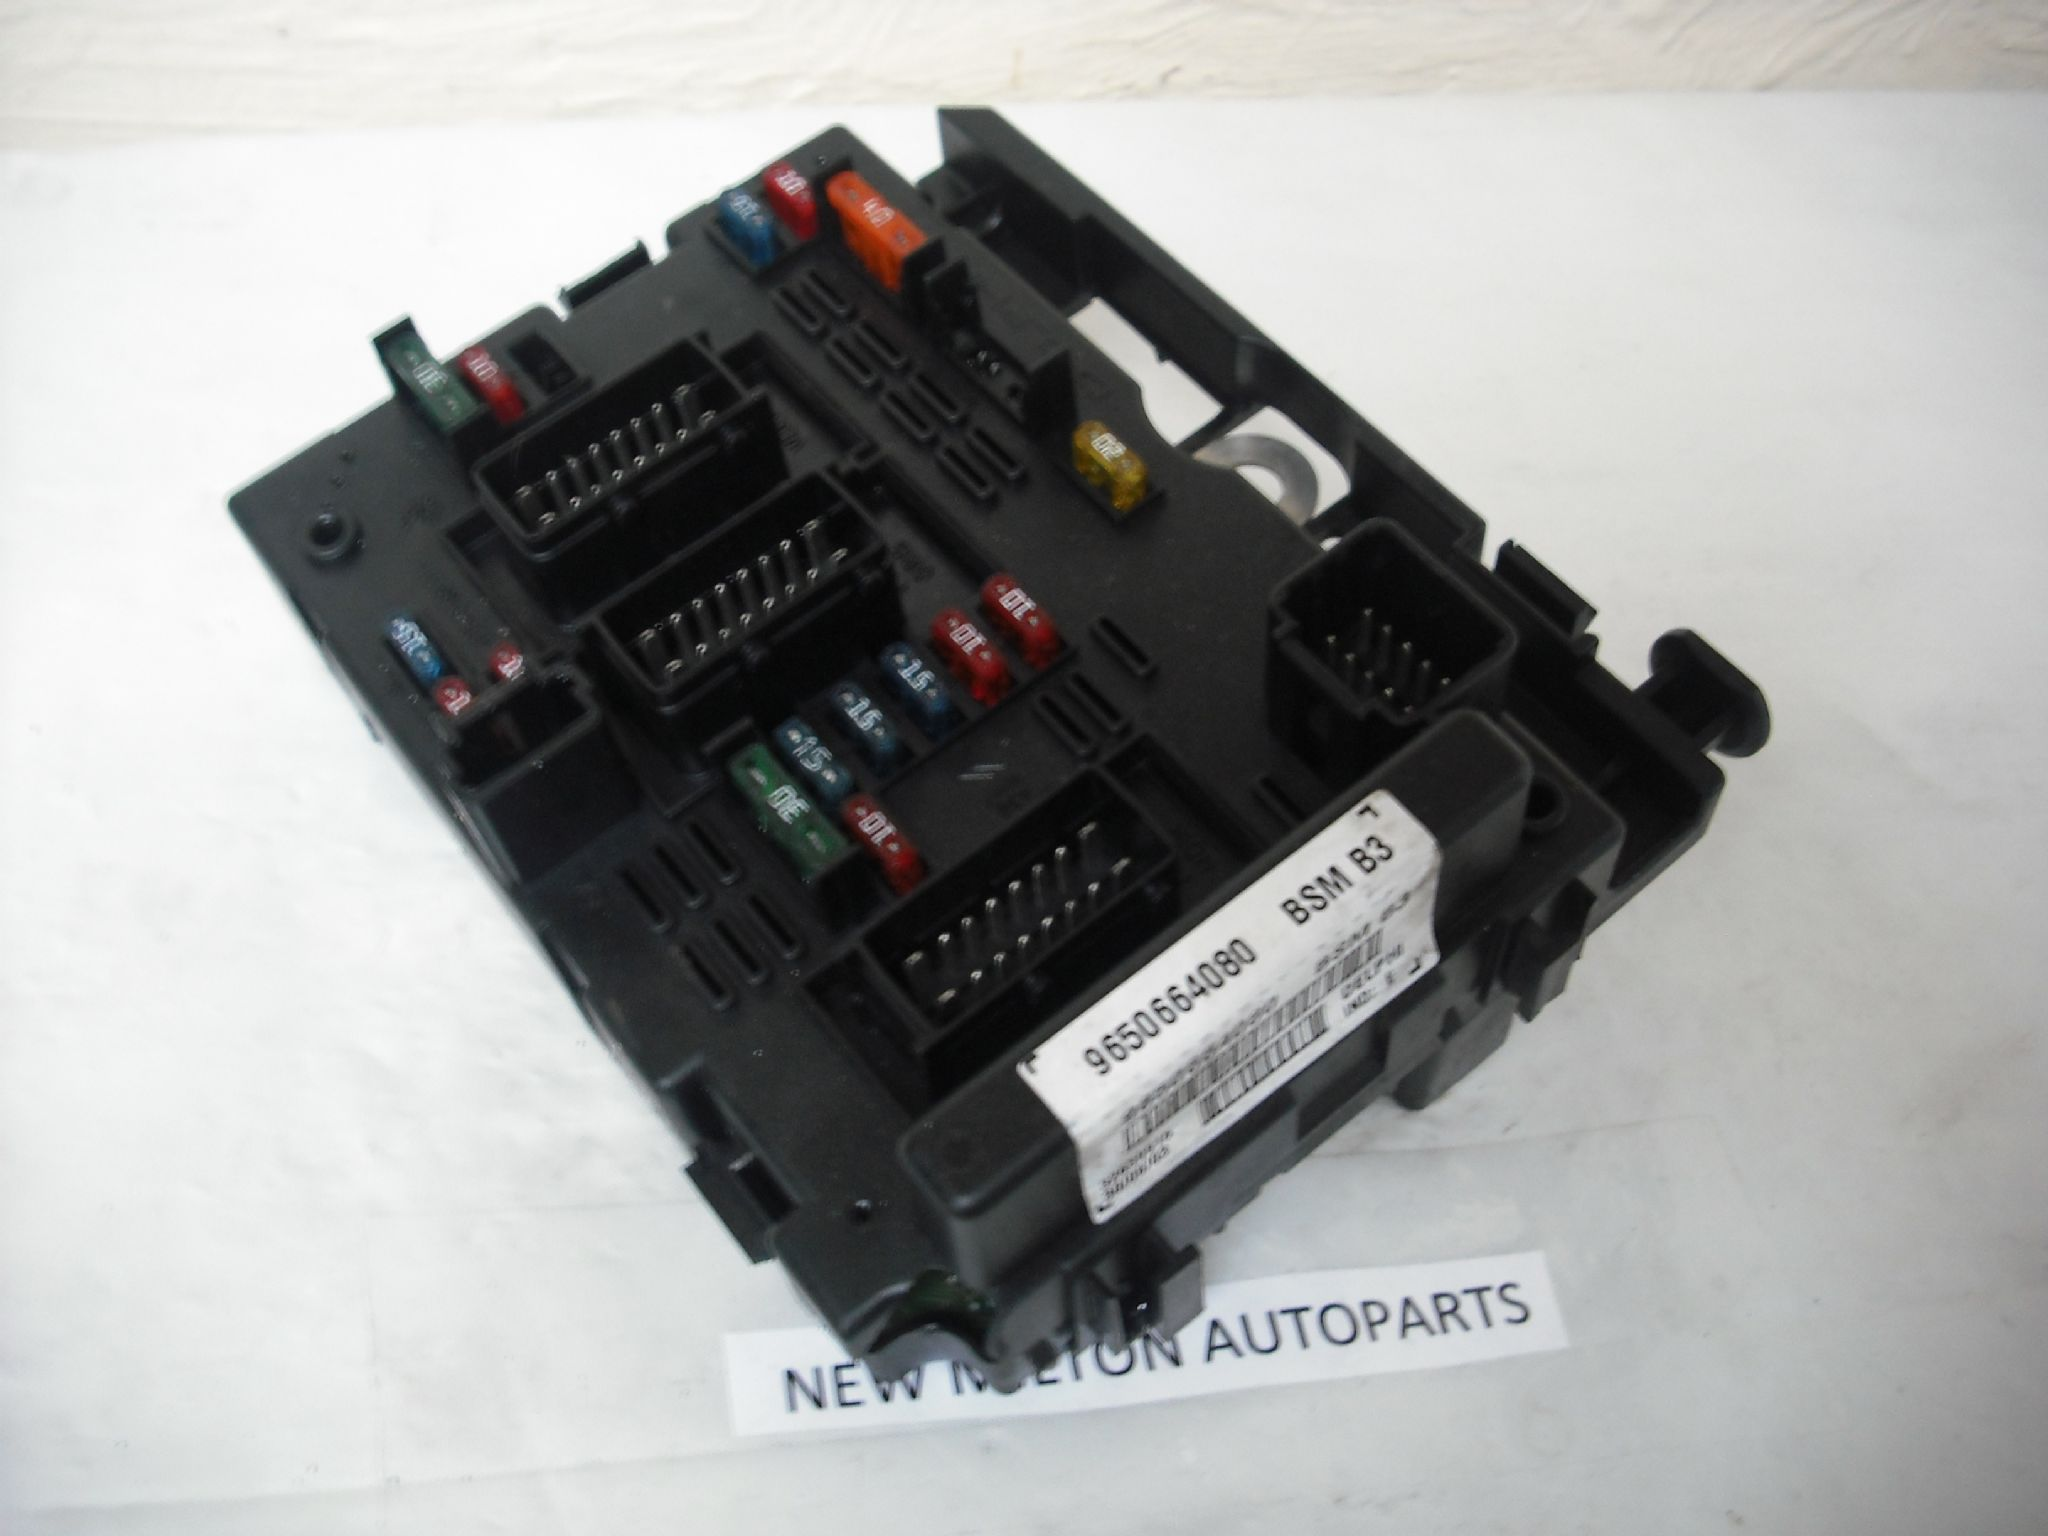 Delphi Fuse Box Wiring Diagrams Fiat Doblo Engine Compartment And Relay Table Sorry Out Of Stock Citroen C8 Peugeot 807 Controller 9650664080 Bsm B3